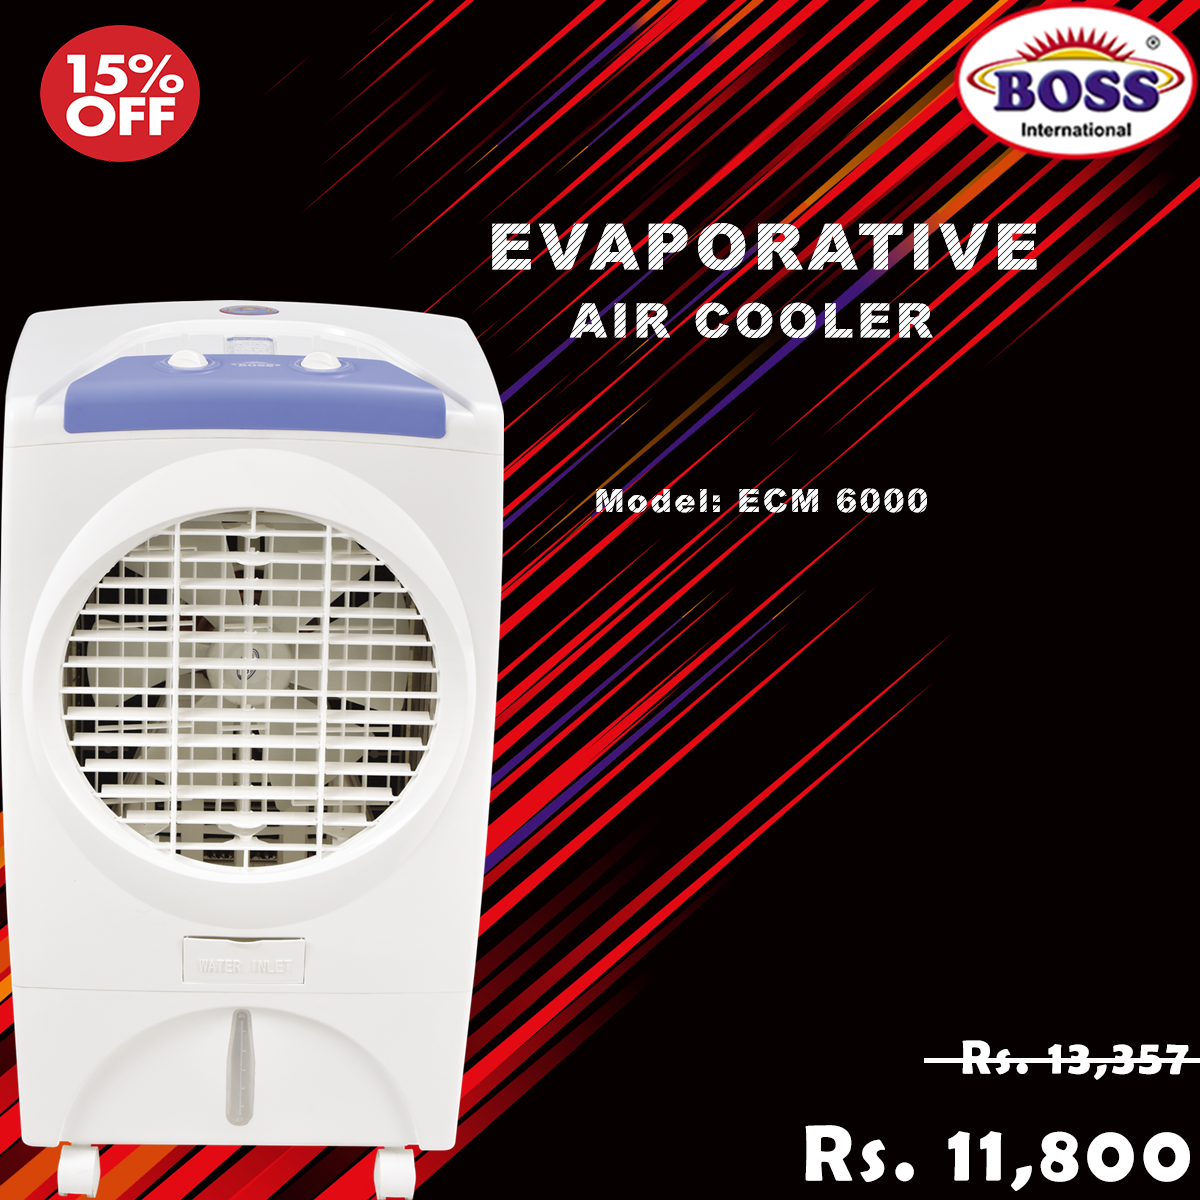 Air Cooler in Pakistan Best Quality Evaporative Air